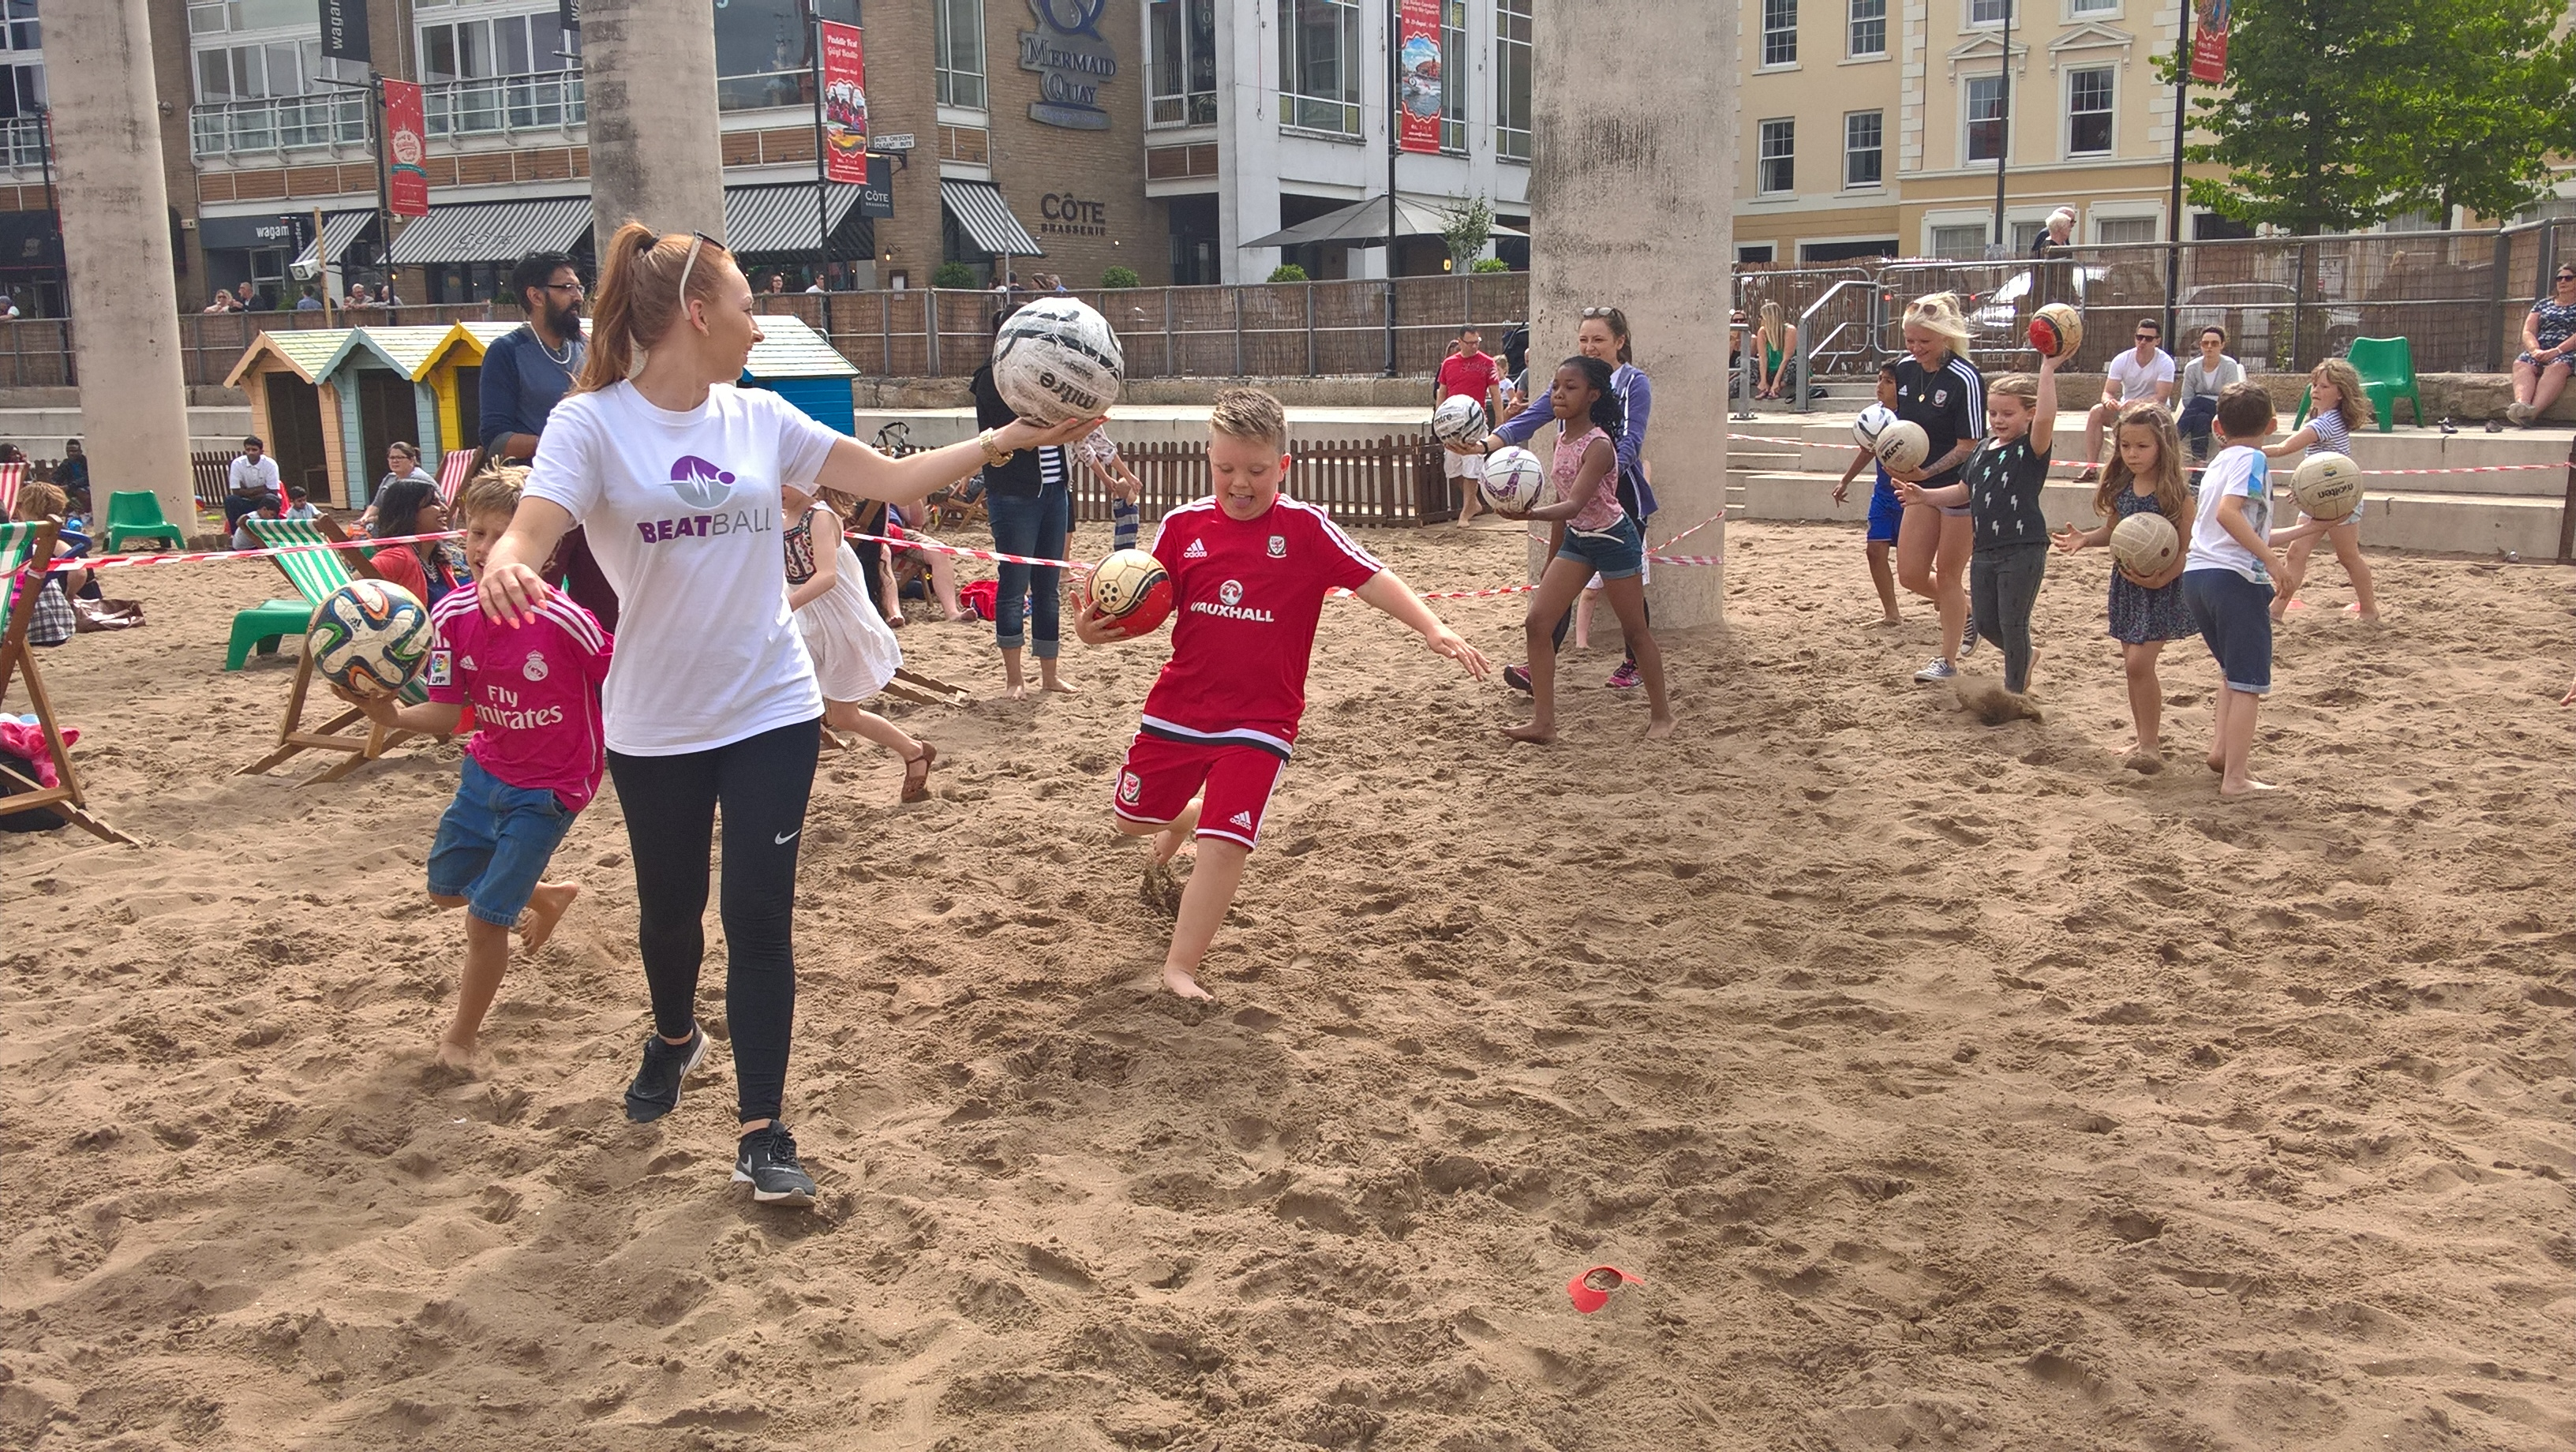 5 exciting reasons why you should join us for Beach Beatball this weekend